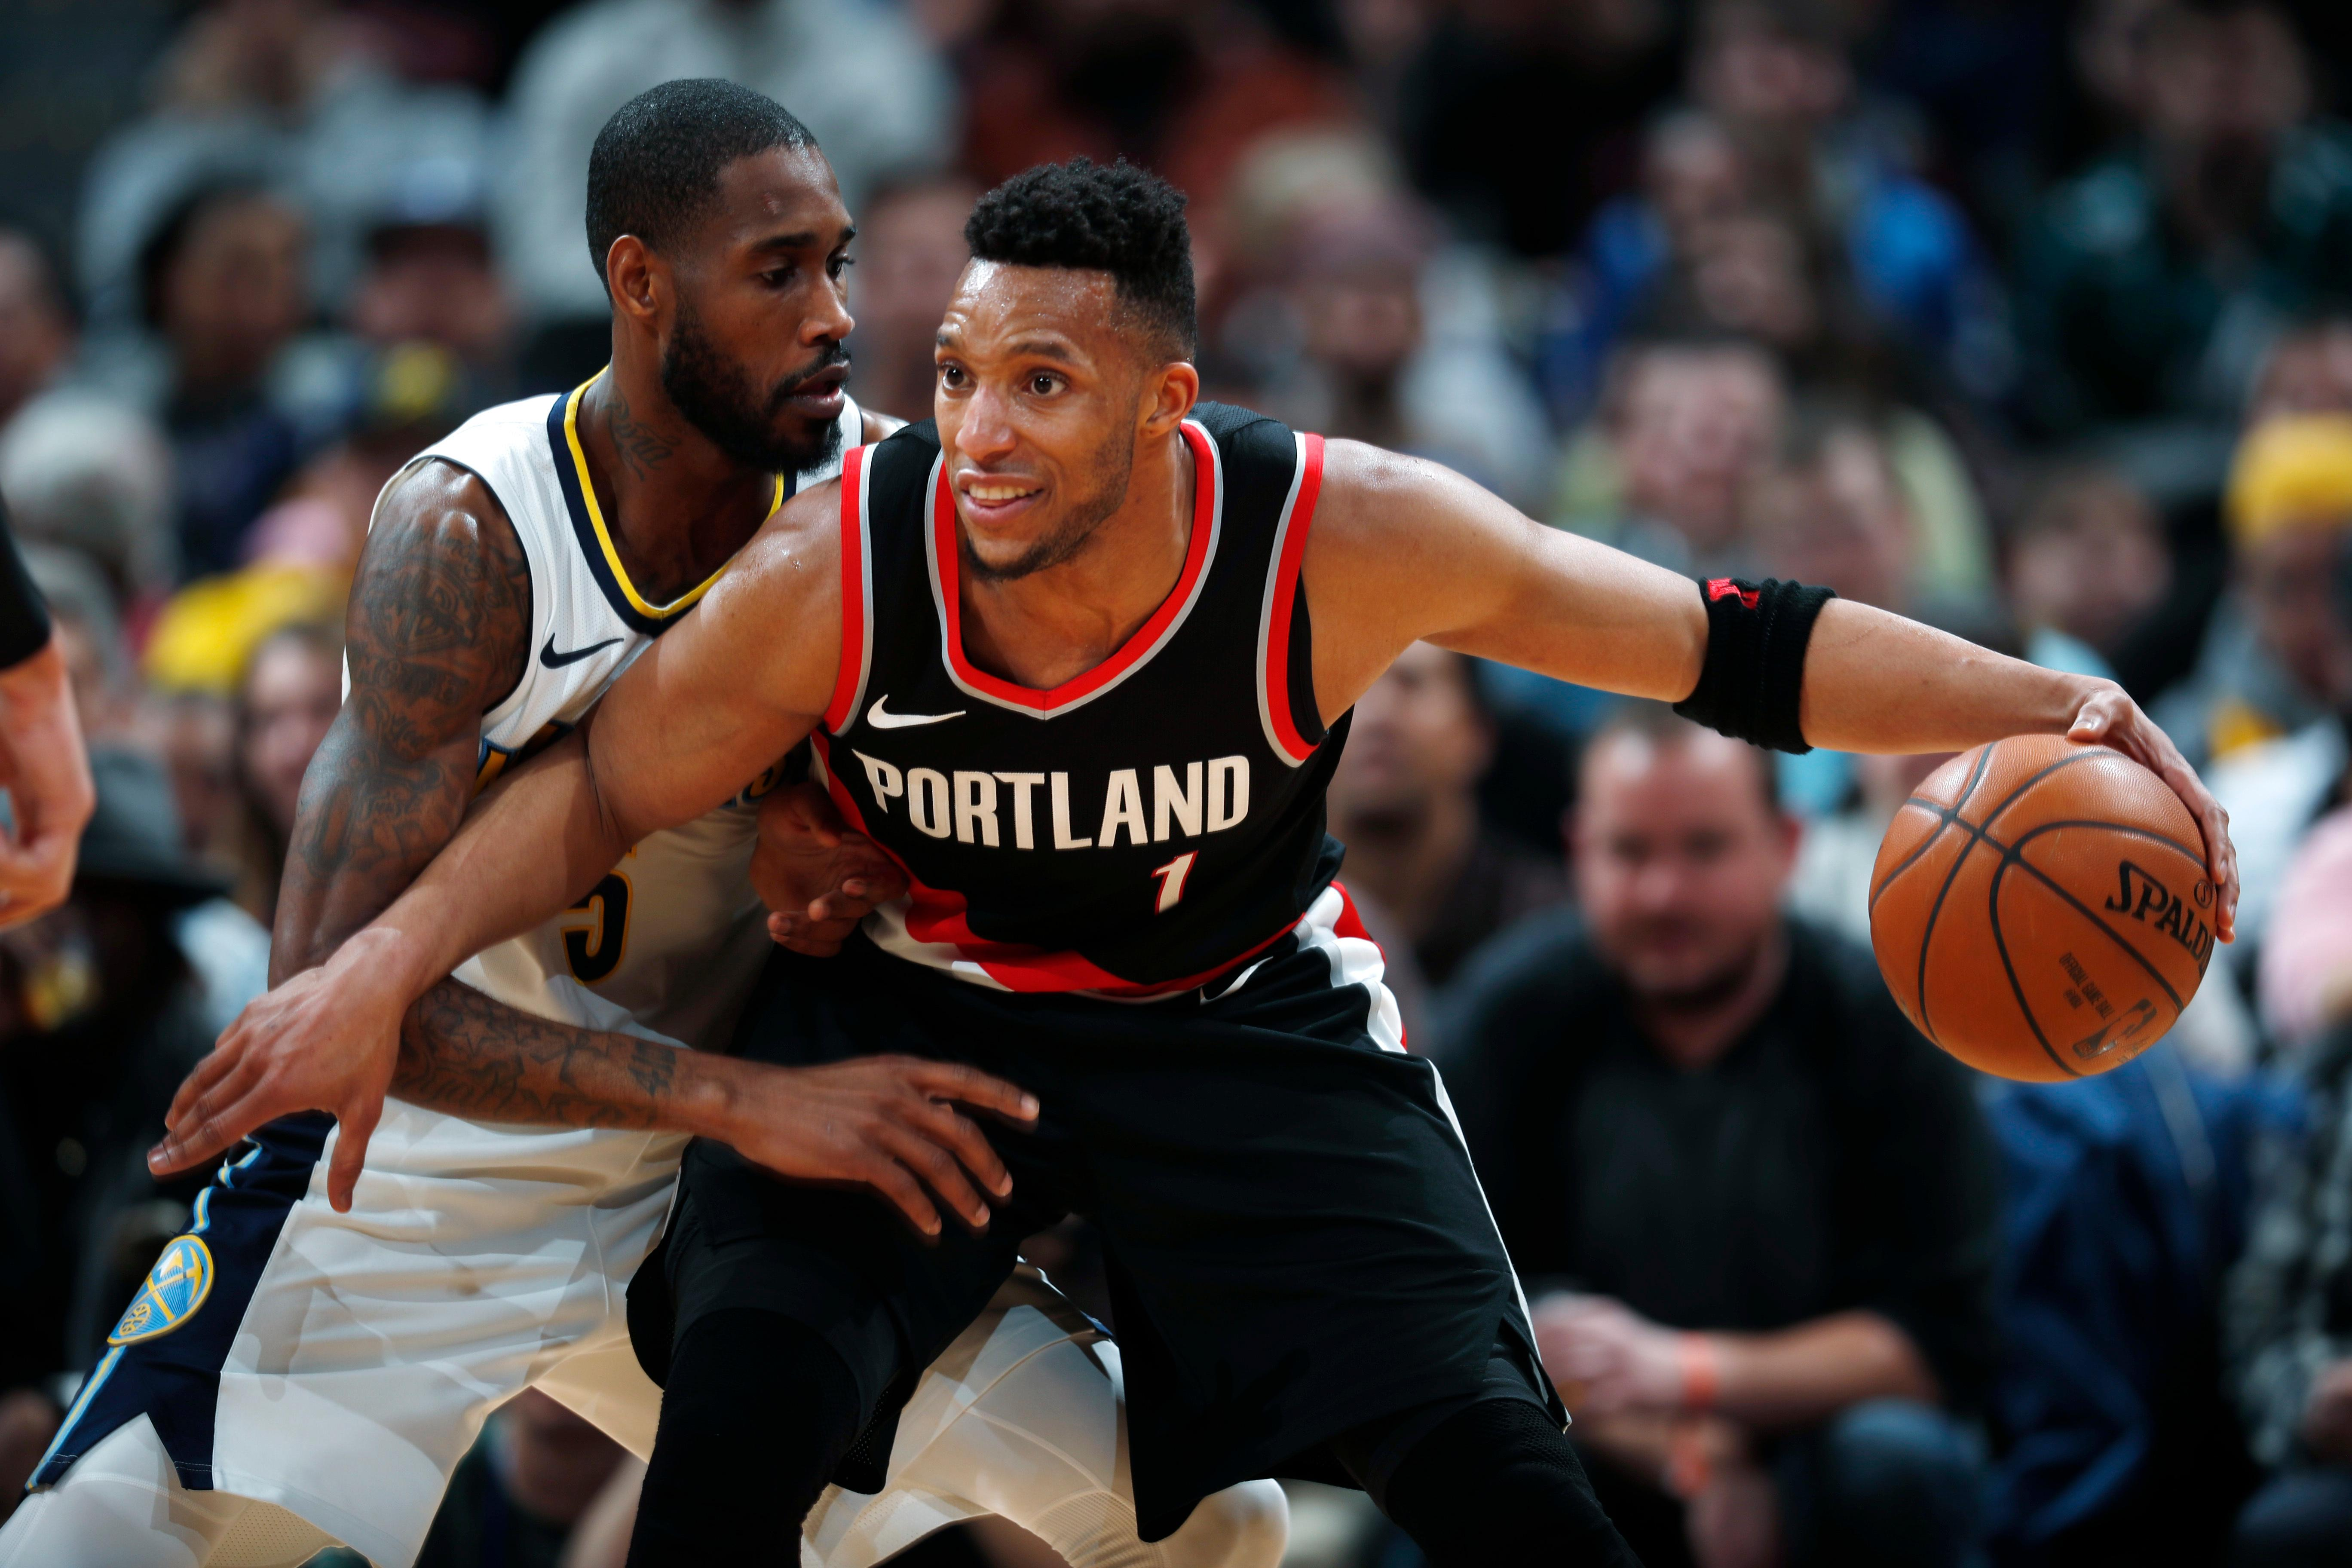 Portland Trail Blazers guard Evan Turner, right, looks to pass the ball as Denver Nuggets guard Will Barton defends in the first half of an NBA basketball game Monday, Jan. 22, 2018, in Denver. (AP Photo/David Zalubowski)